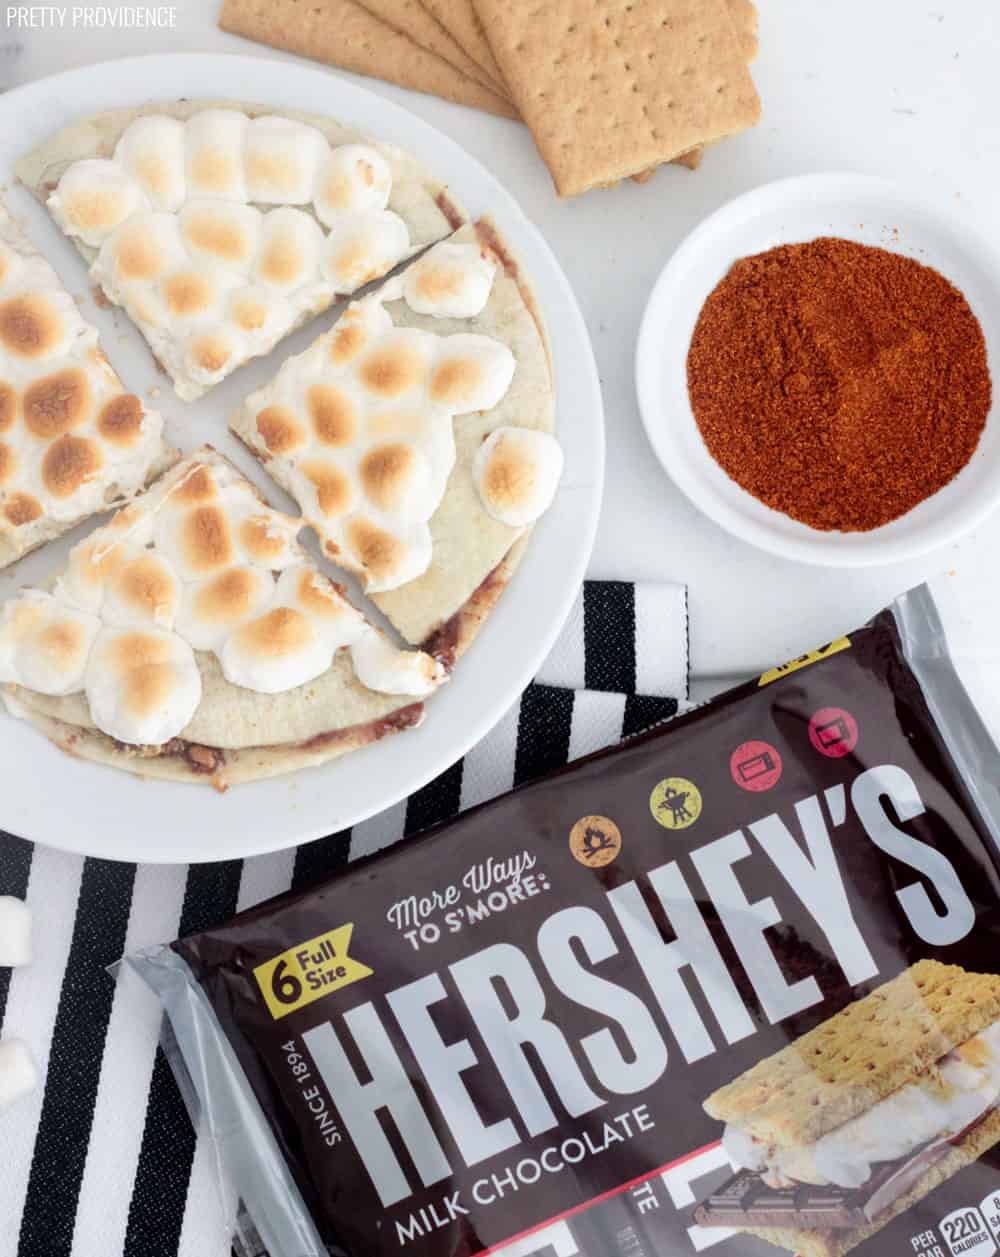 S'mores Quesadilla with toasted marshmallows on a white plate, over a striped towel, with Hershey's bars, cayenne pepper and graham crackers surrounding it.